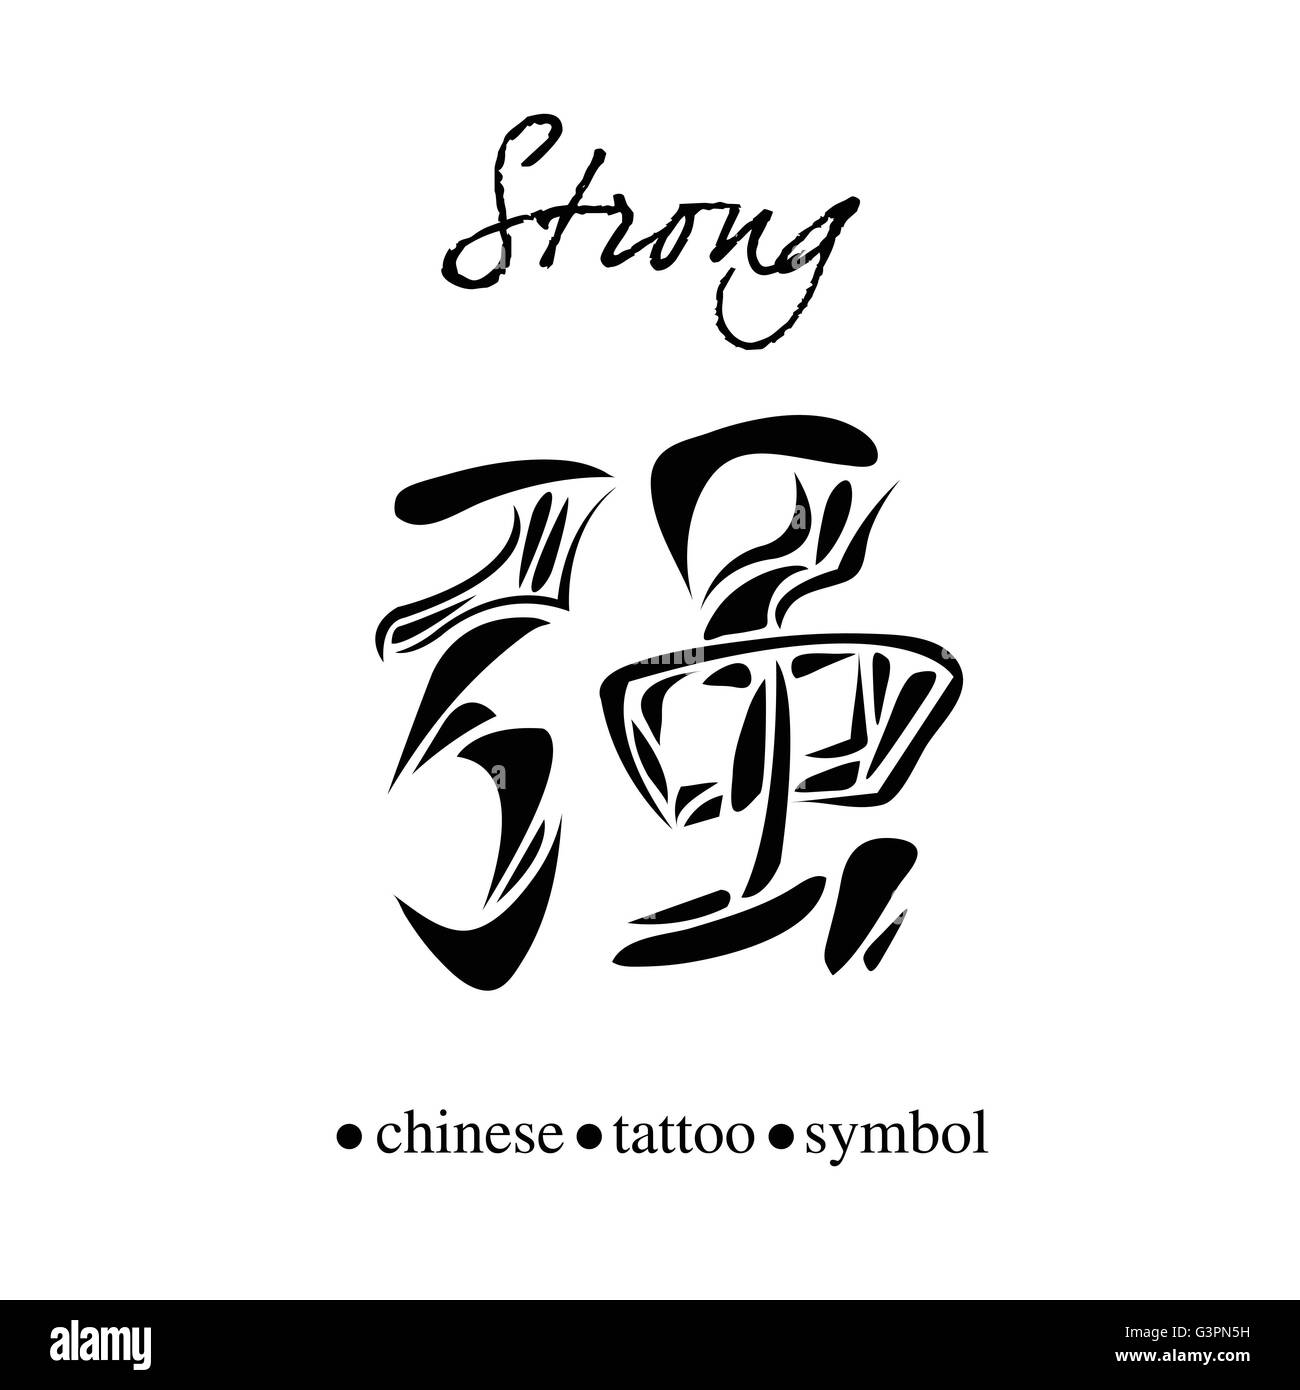 Chinese Character Calligraphy For Strong Stock Vector Art